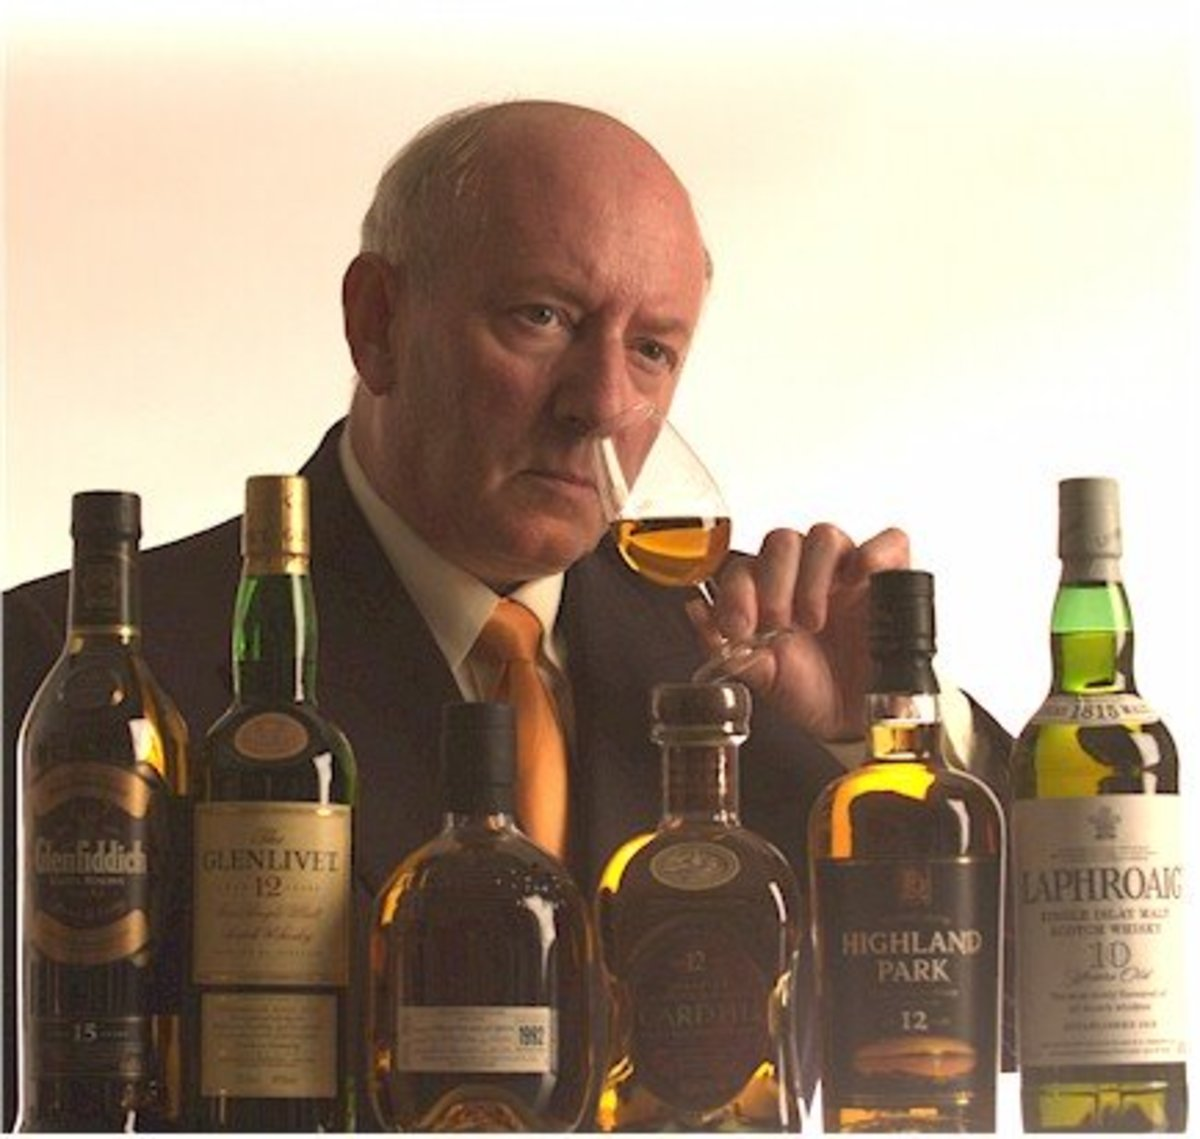 A man enjoying a single malt.